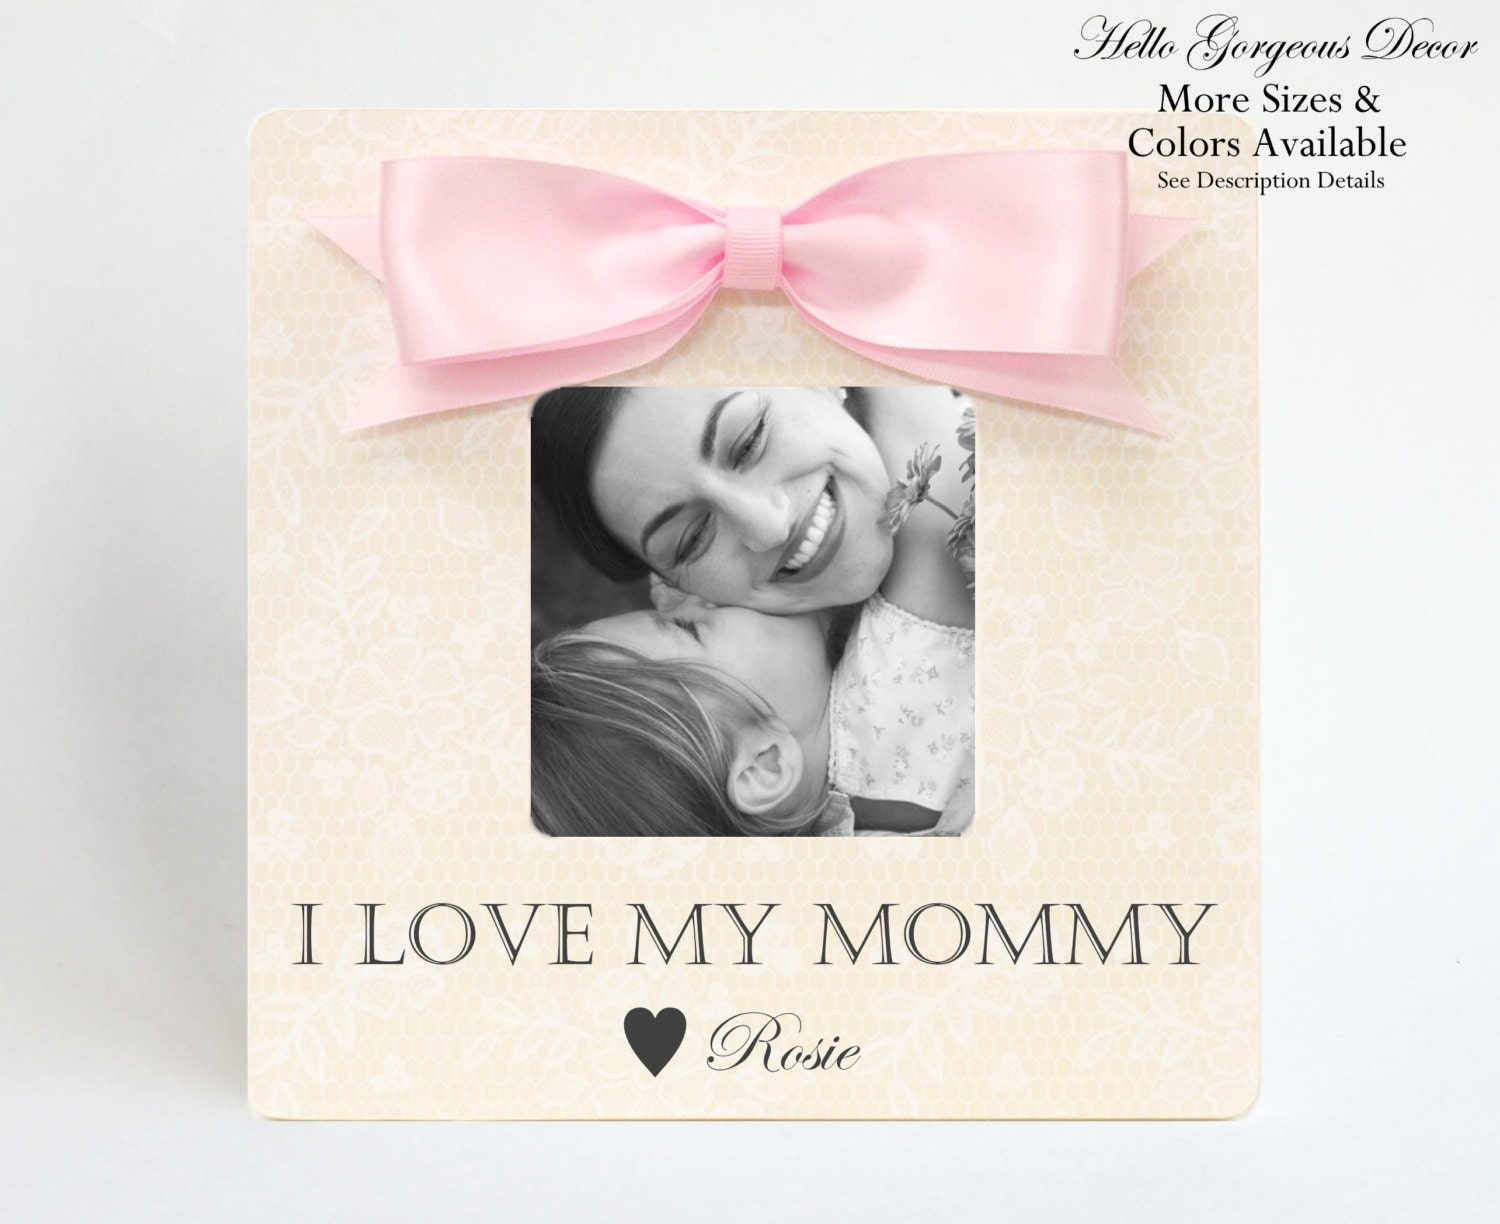 Personalized Mom Mother Picture Frame Gift I LOVE MY MOMMY from Kids ...